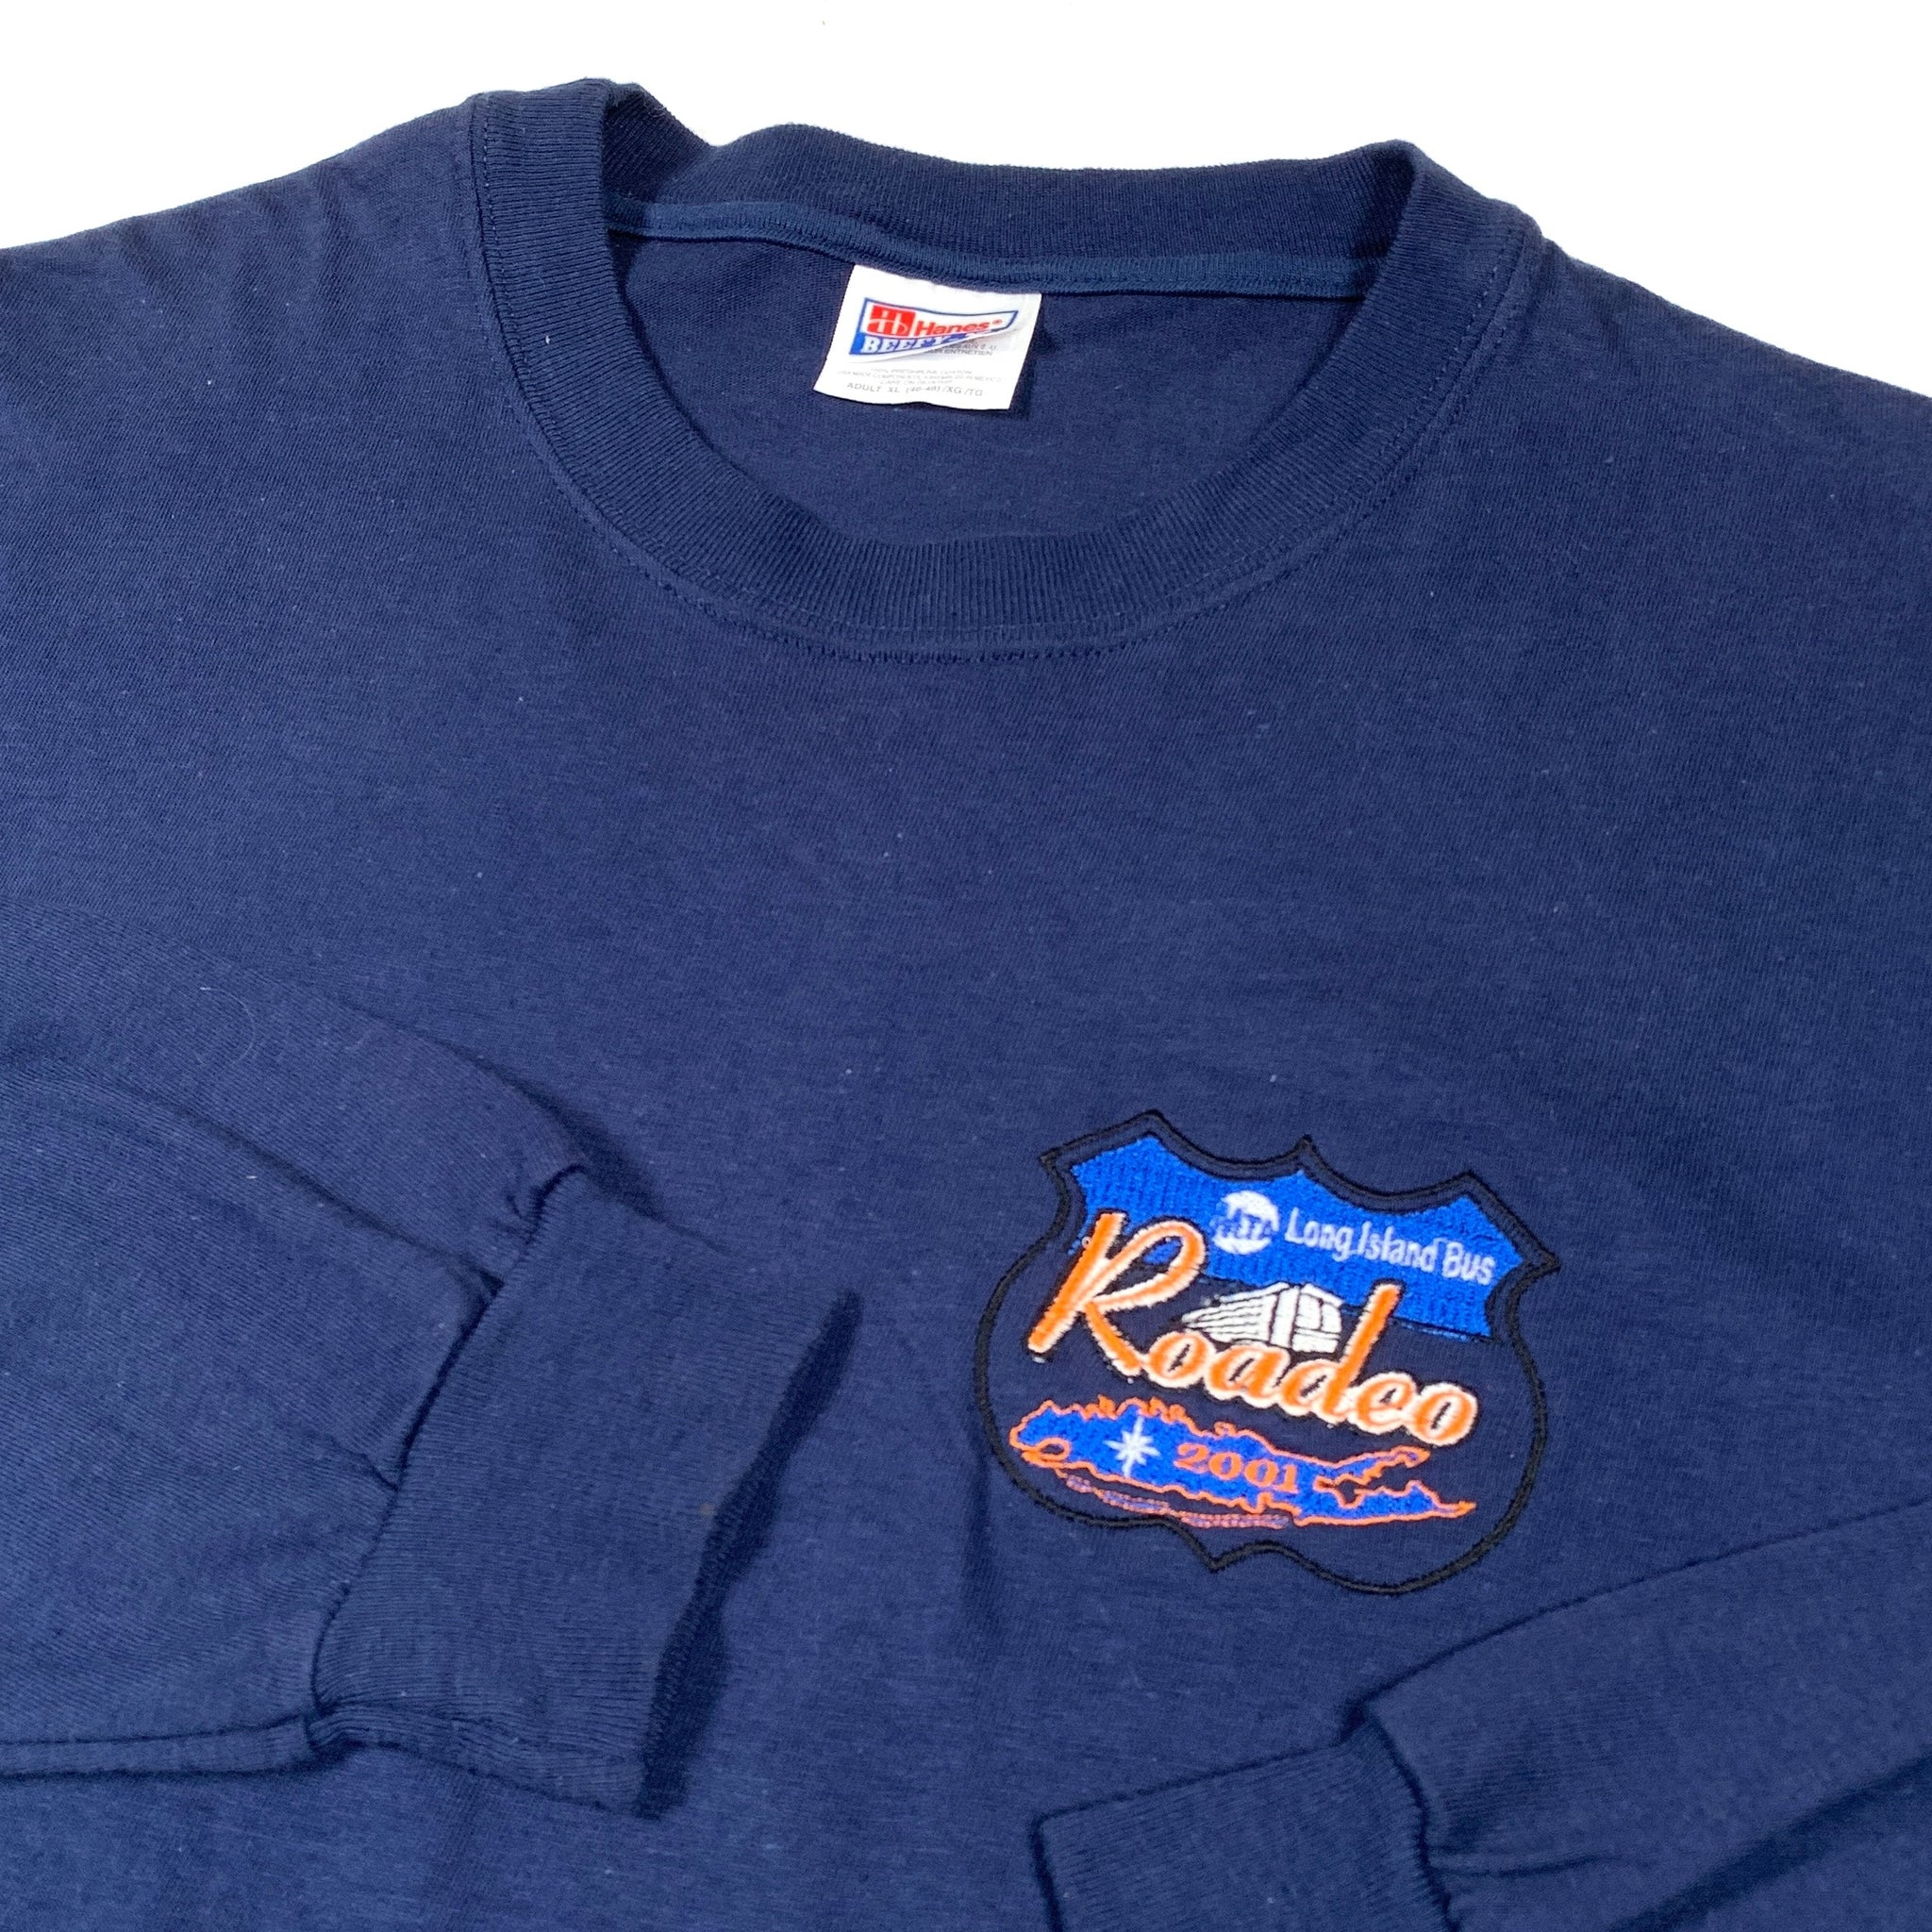 MTA Buses Roadeo Longsleeve (XL)